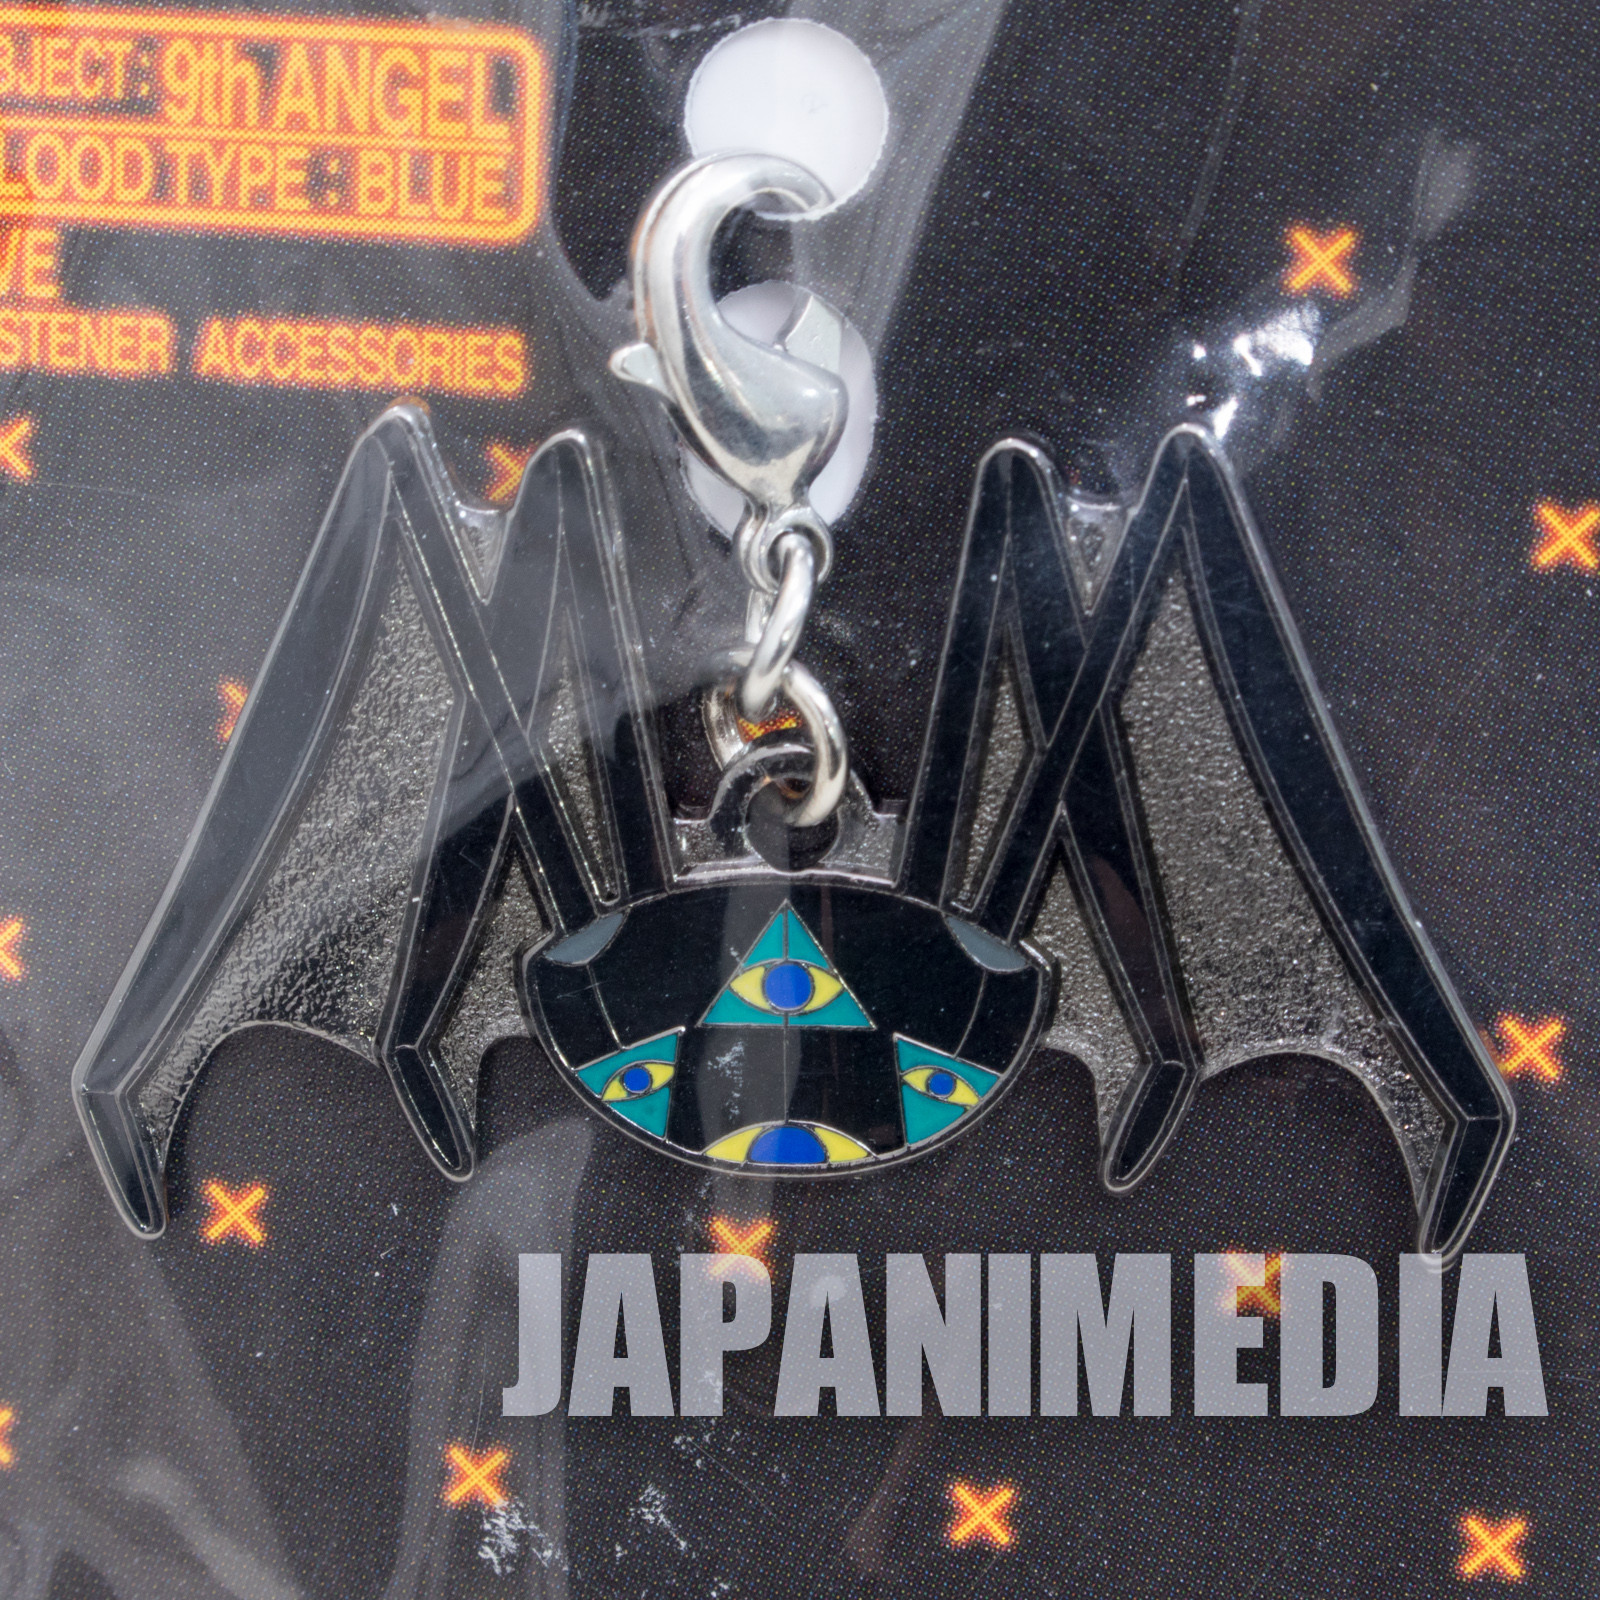 Evangelion 9th Angel Shito Matarael Fastener Accessories JAPAN ANIME MANGA